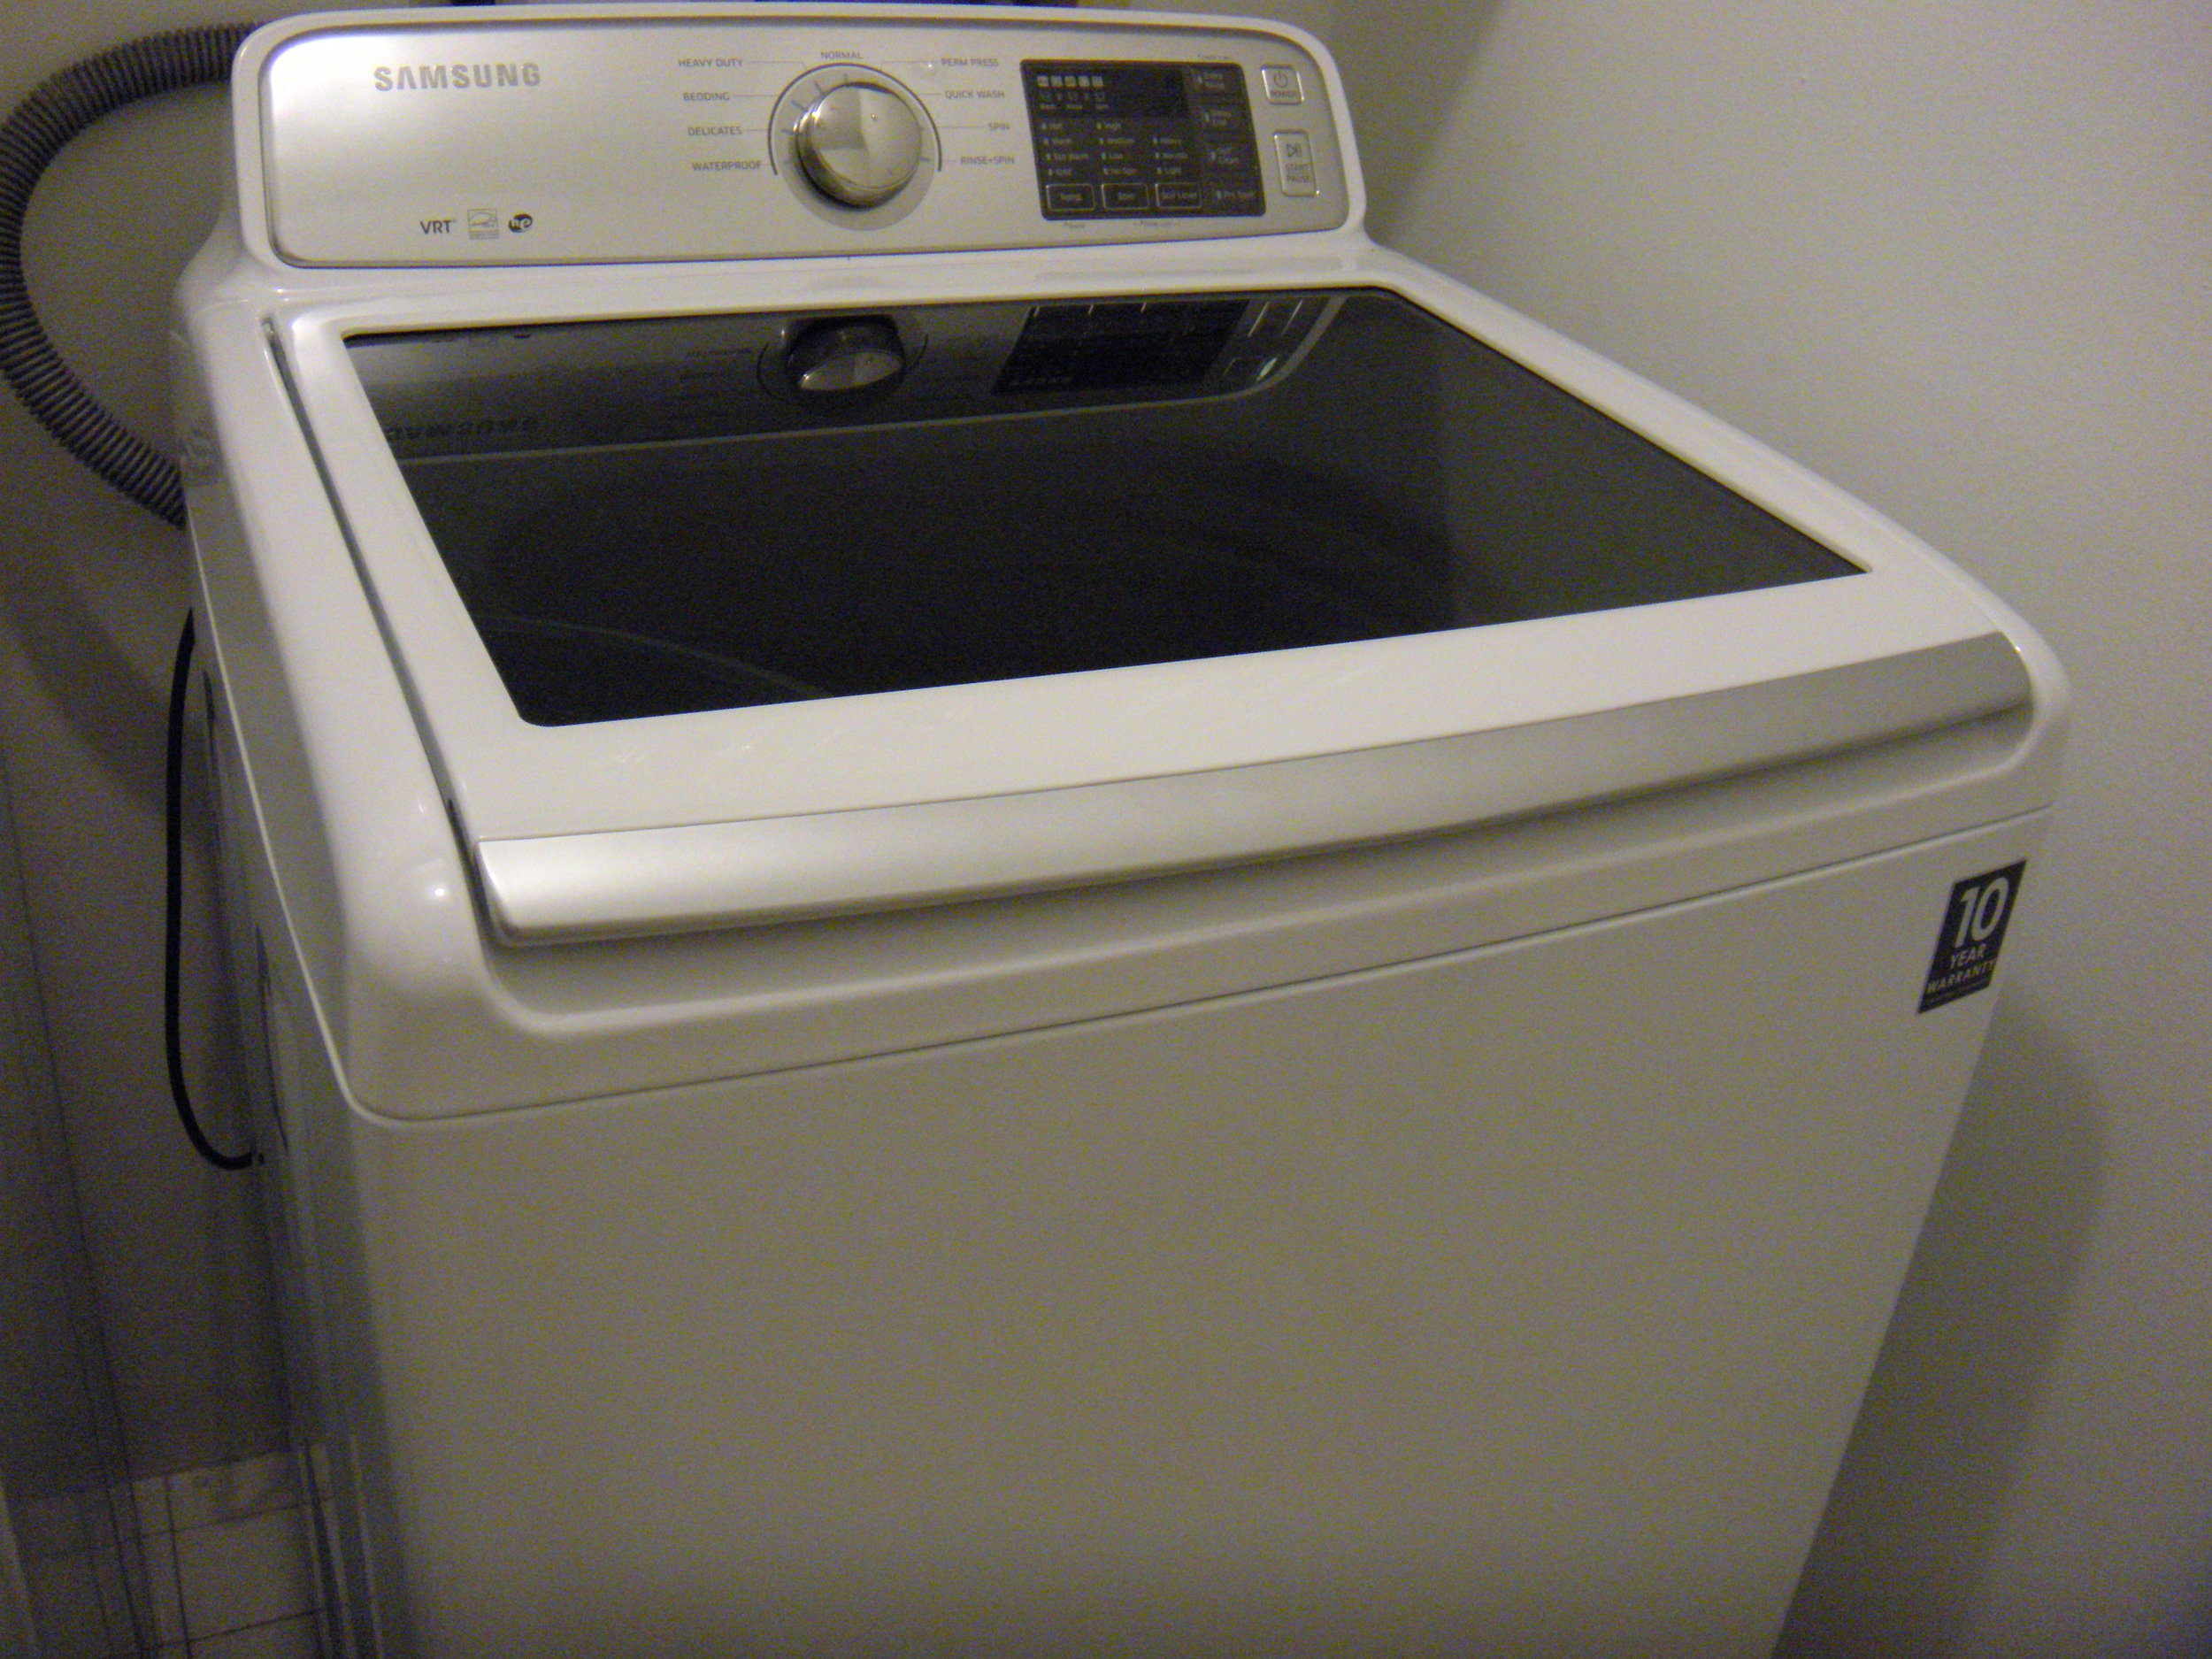 Do you like the new washer?